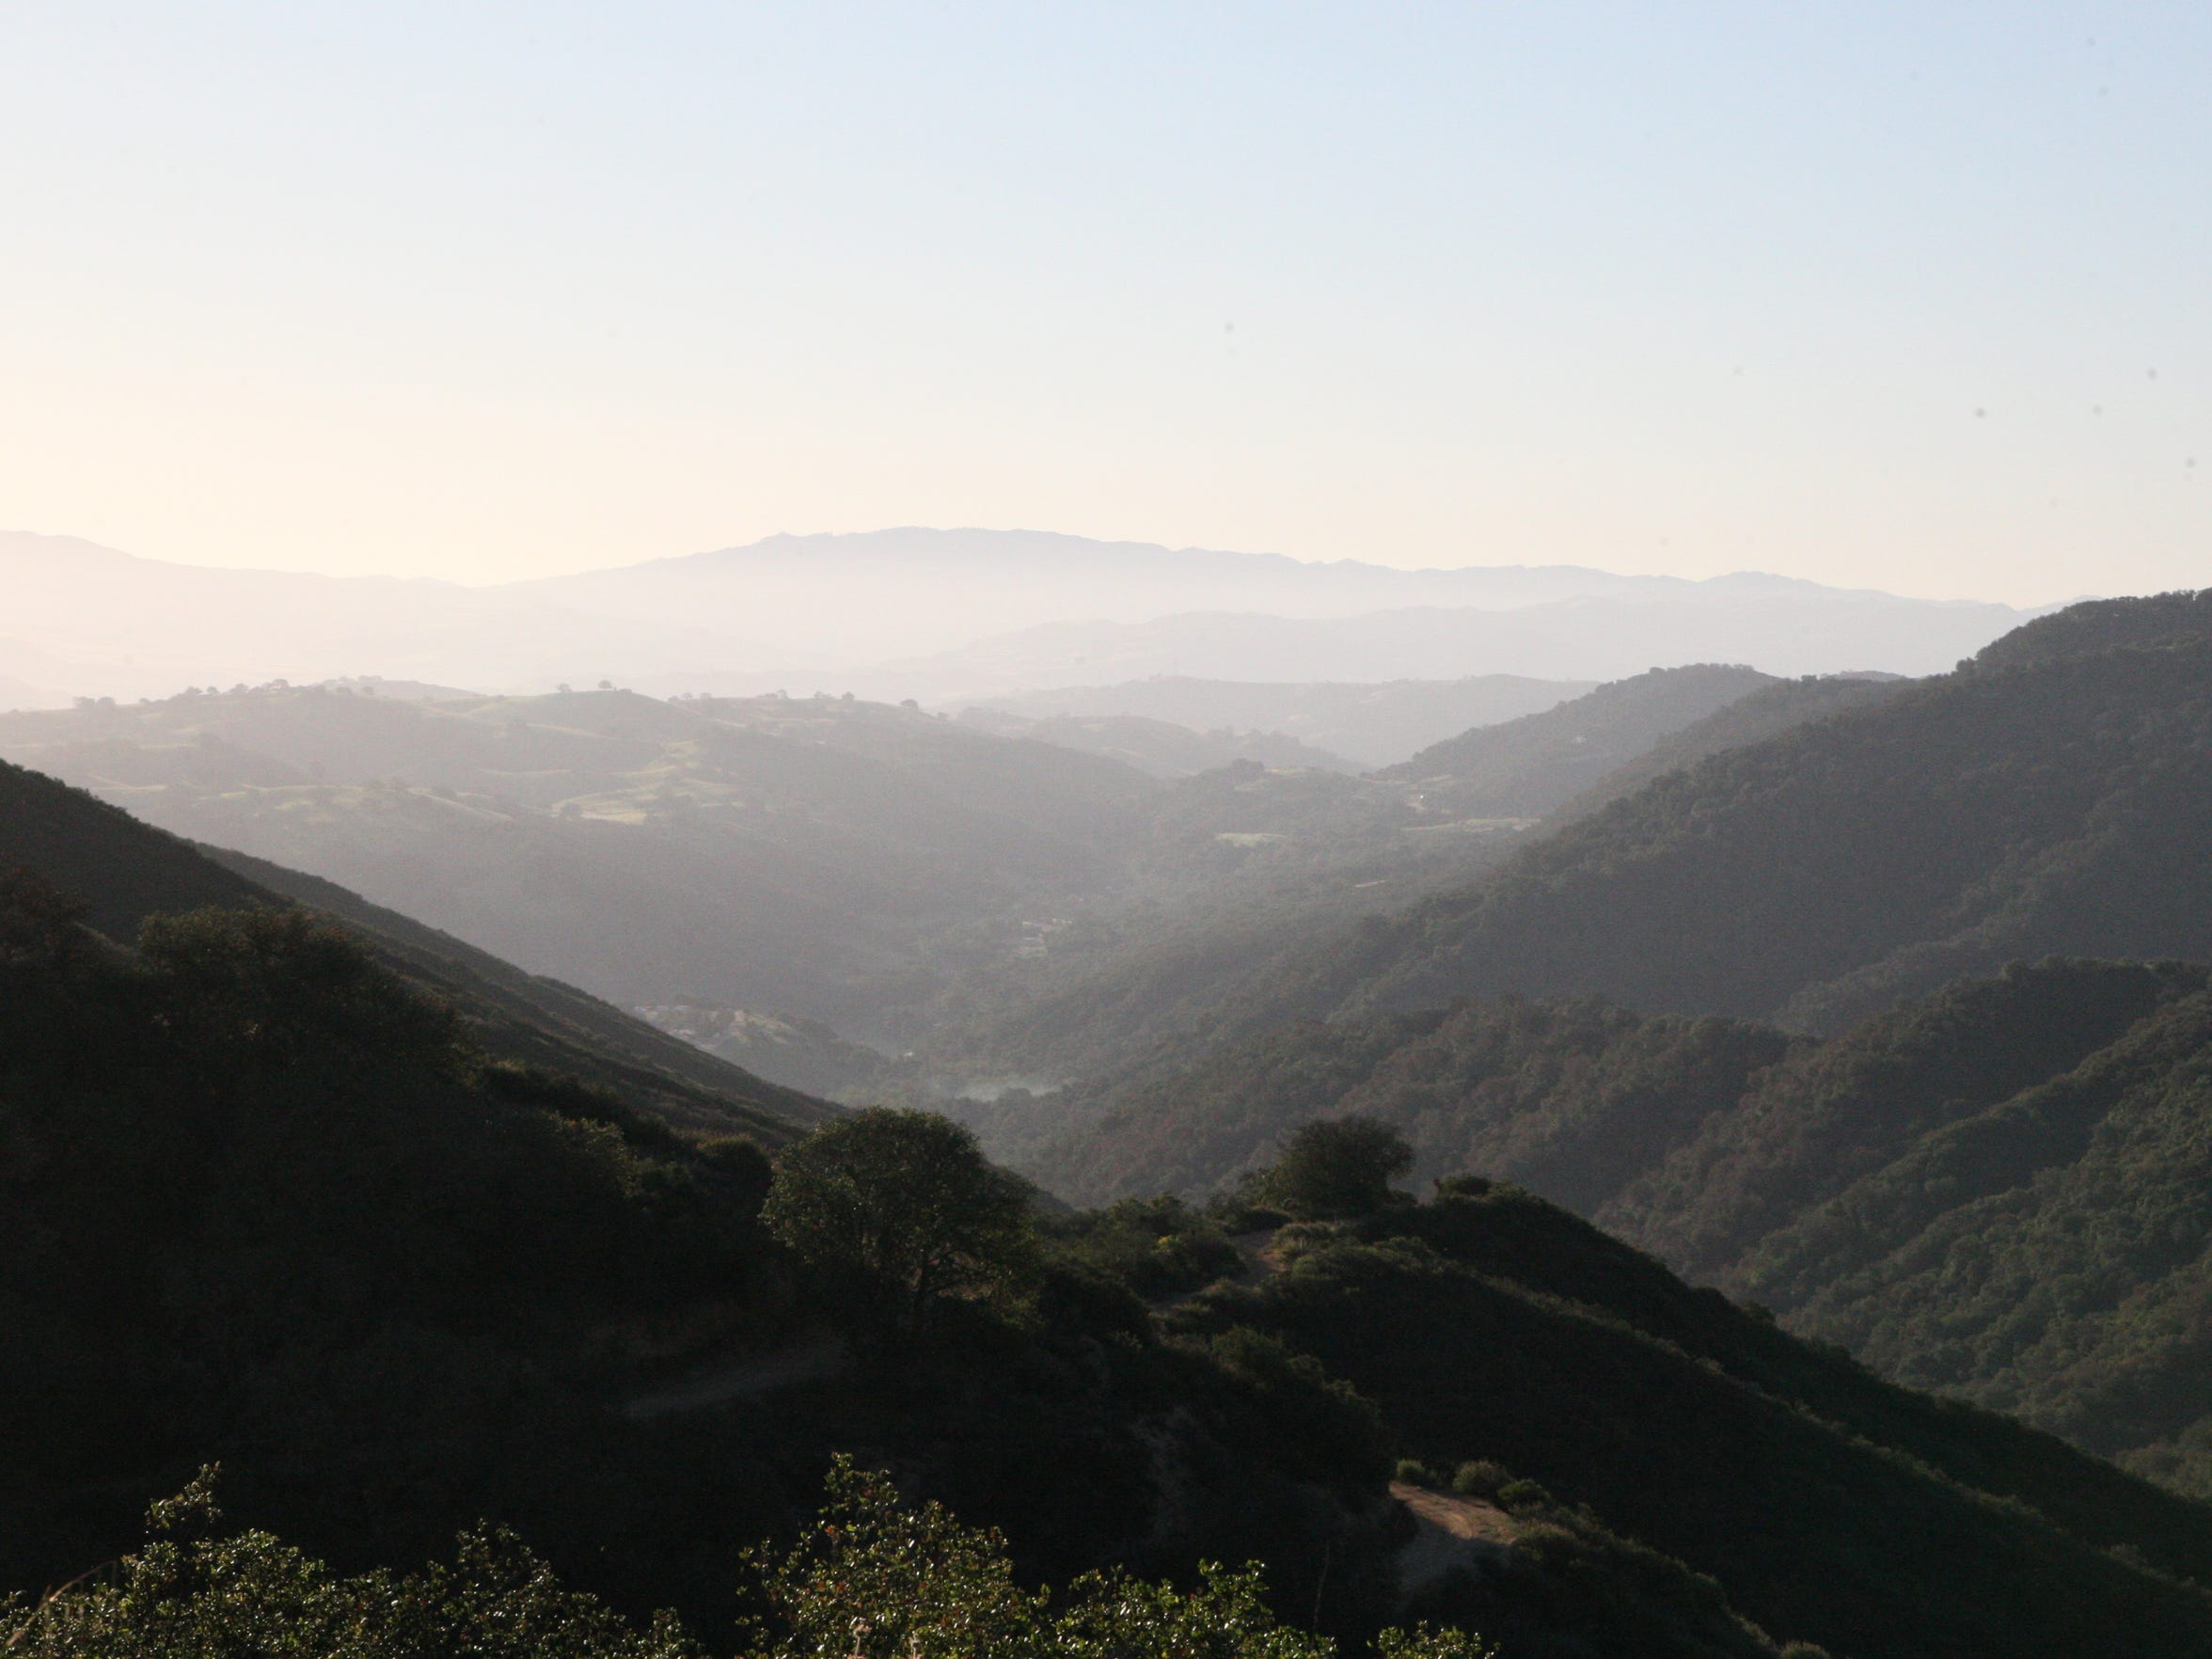 Early morning view of the San Benito Valley from Fremont